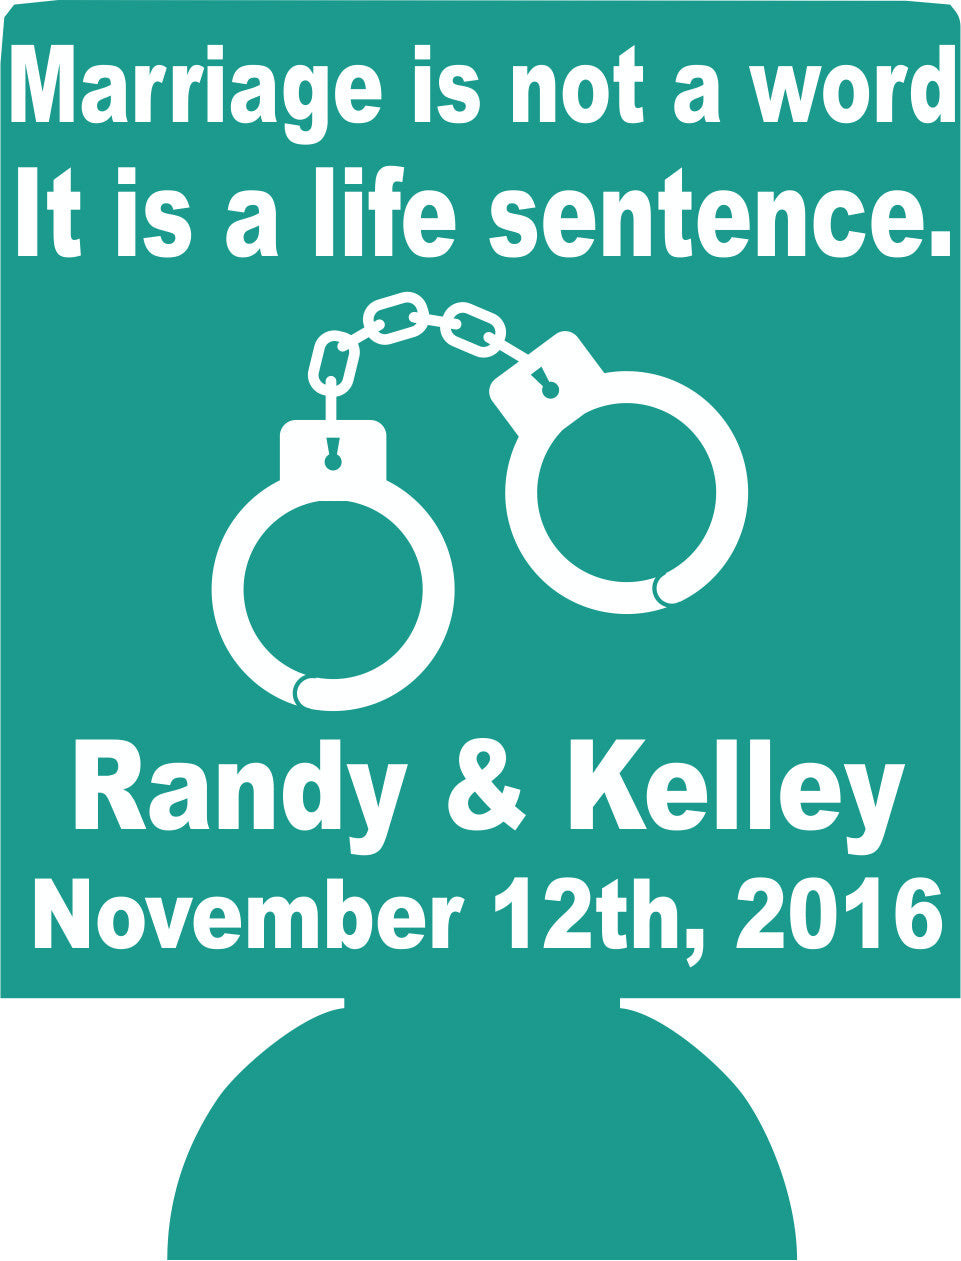 Marriage life sentence Wedding koozies party favors Can Coolers